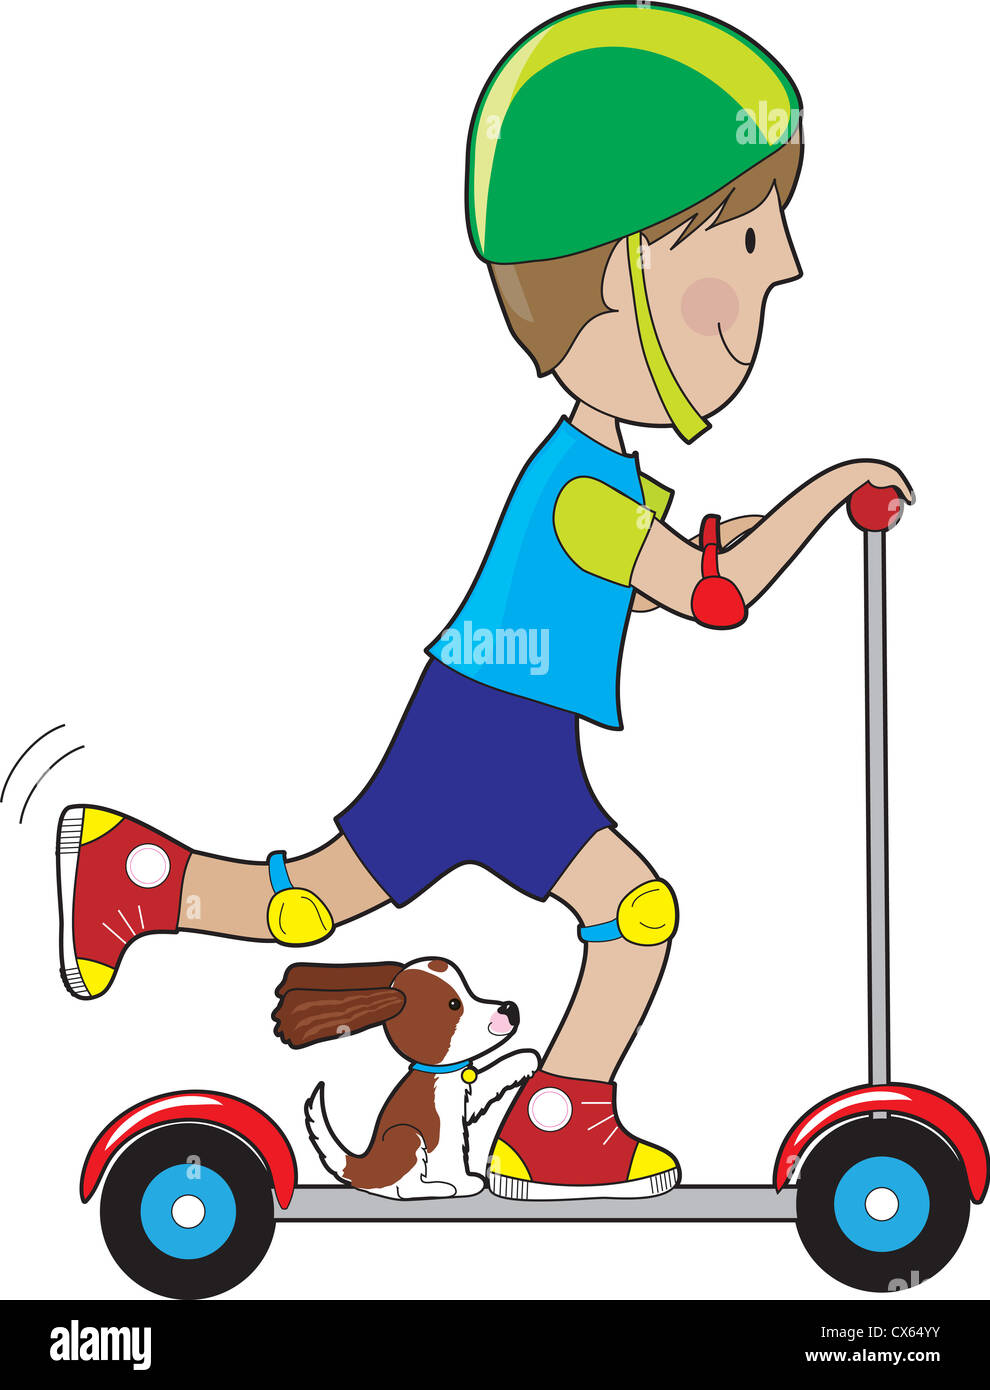 A boy rides his scooter with a pet dog beside his foot, with tail up and ears blowing in the wind. Stock Photo